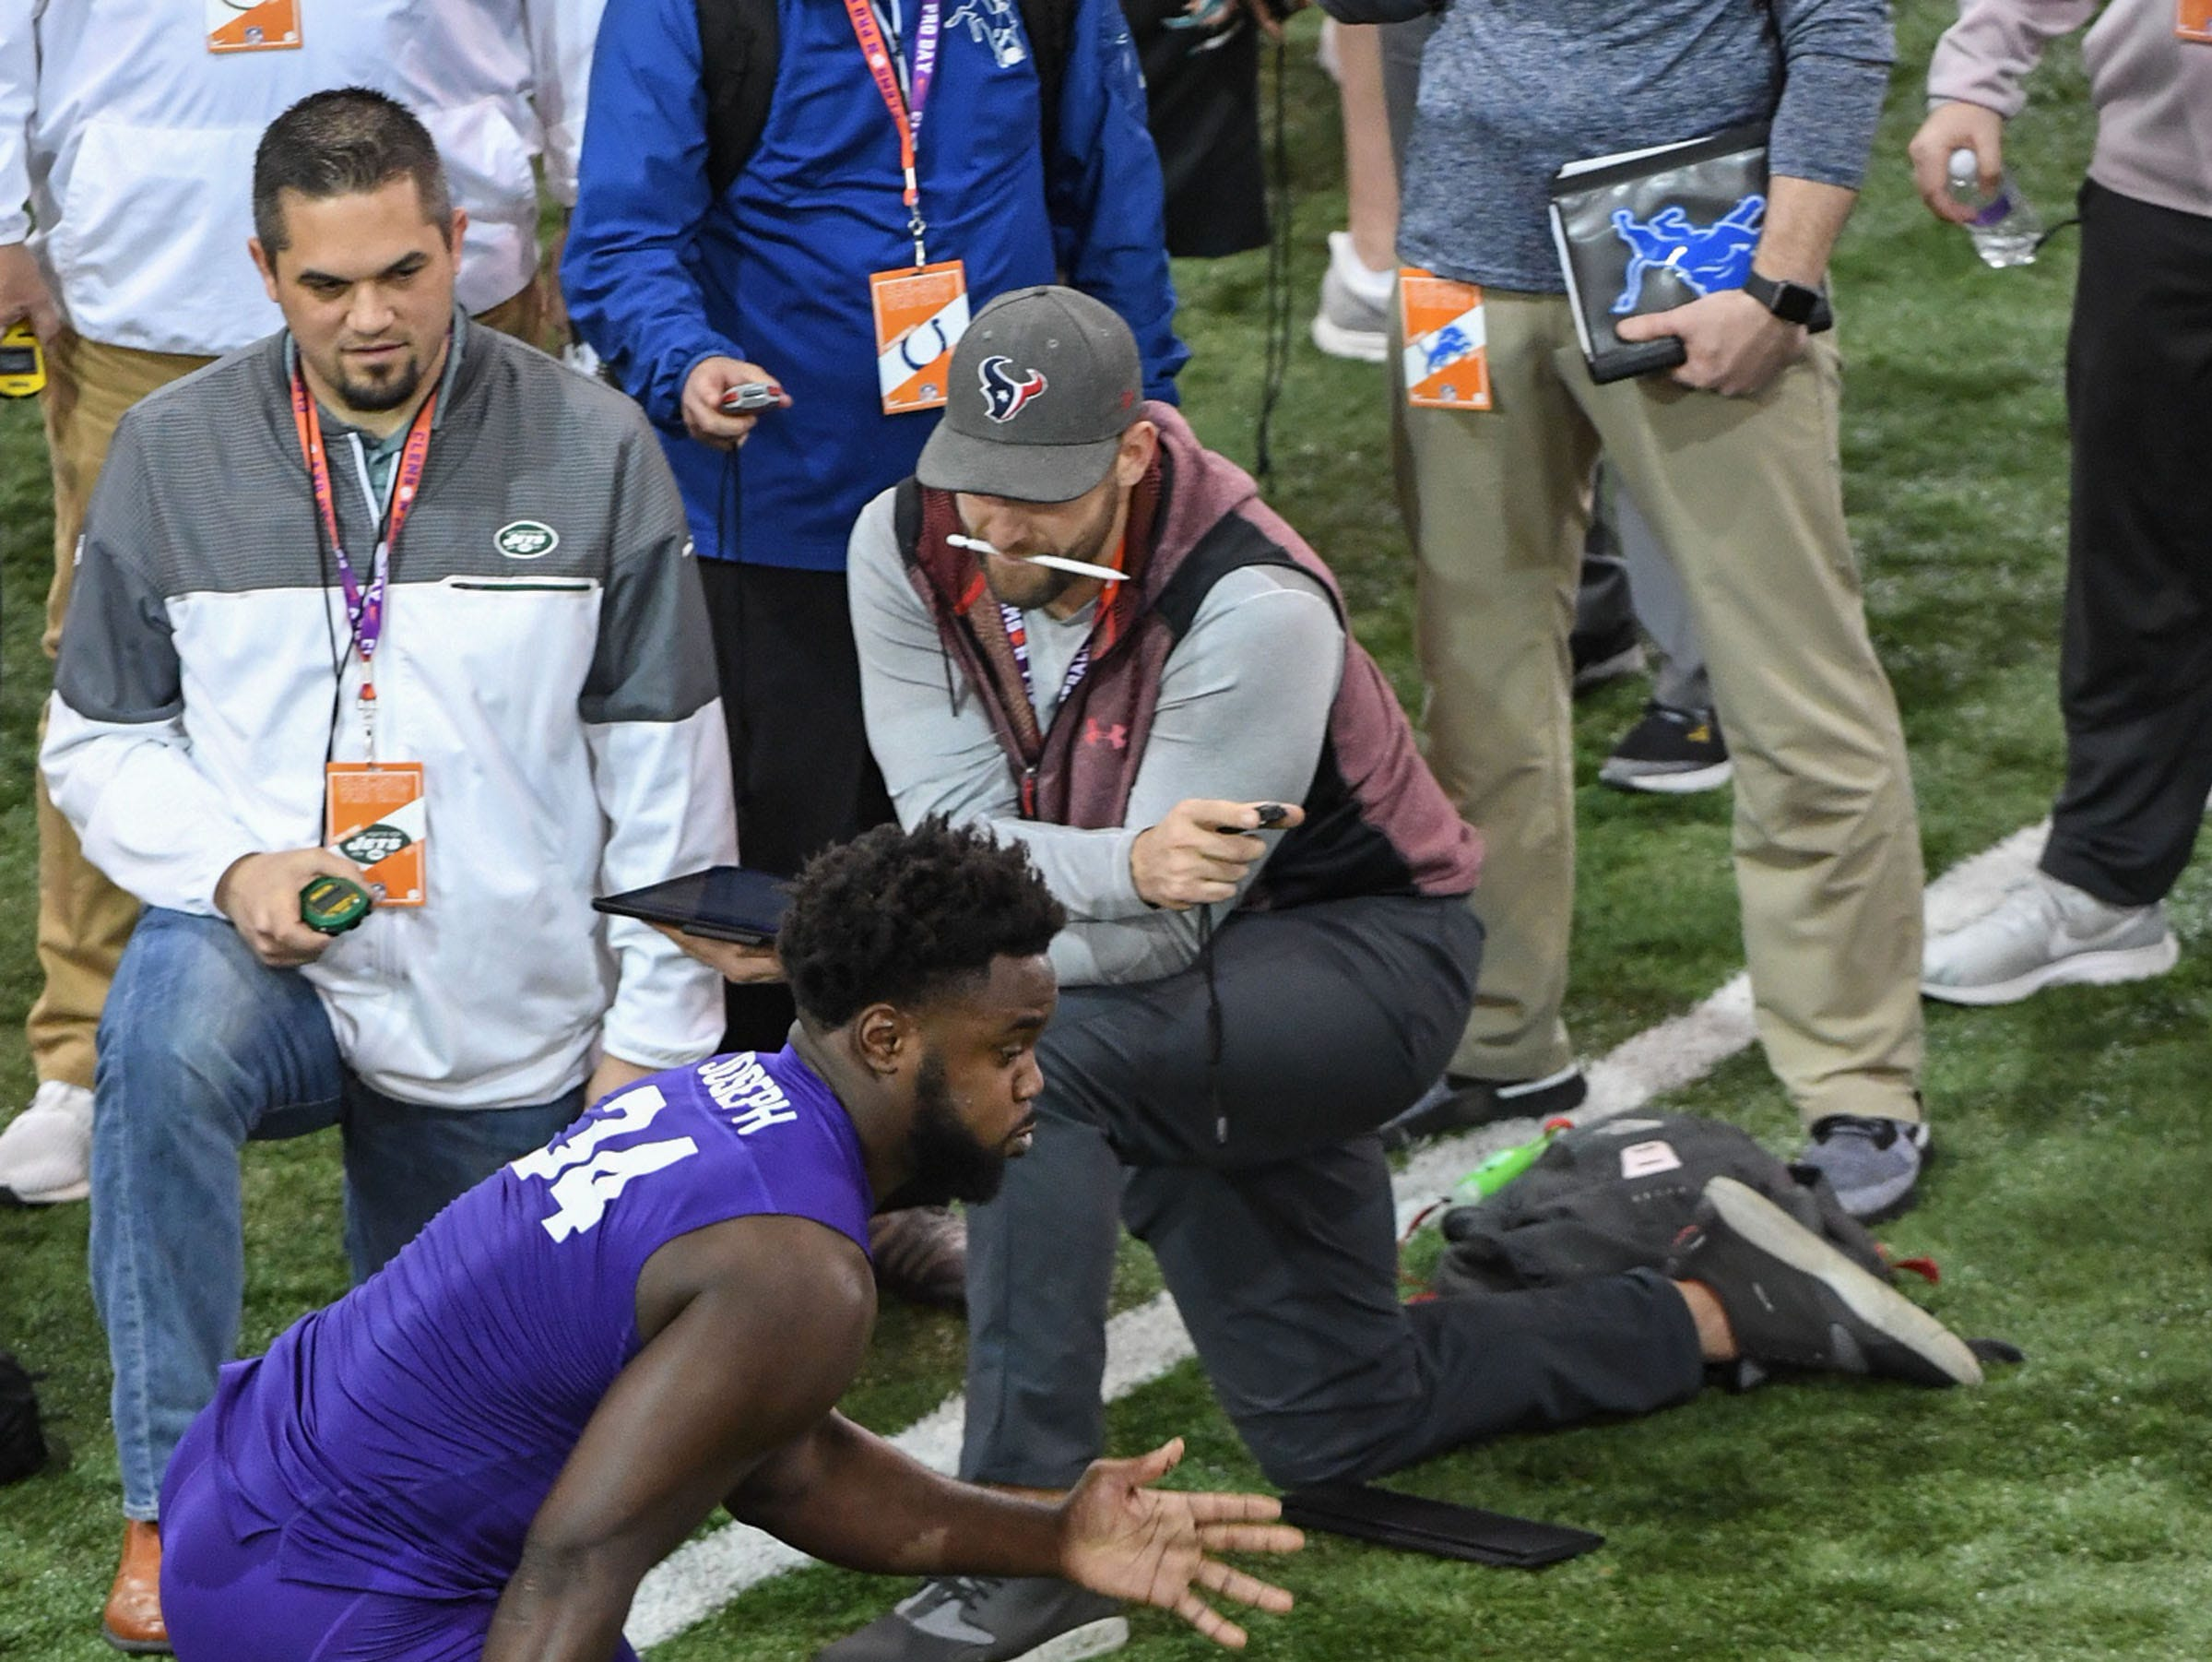 Linebacker Kendall Joseph runs a 7.62 second L-drill for NFL scouts during Clemson Pro Day at the Poe Indoor Facility in Clemson, S.C. Thursday, March 14, 2019.